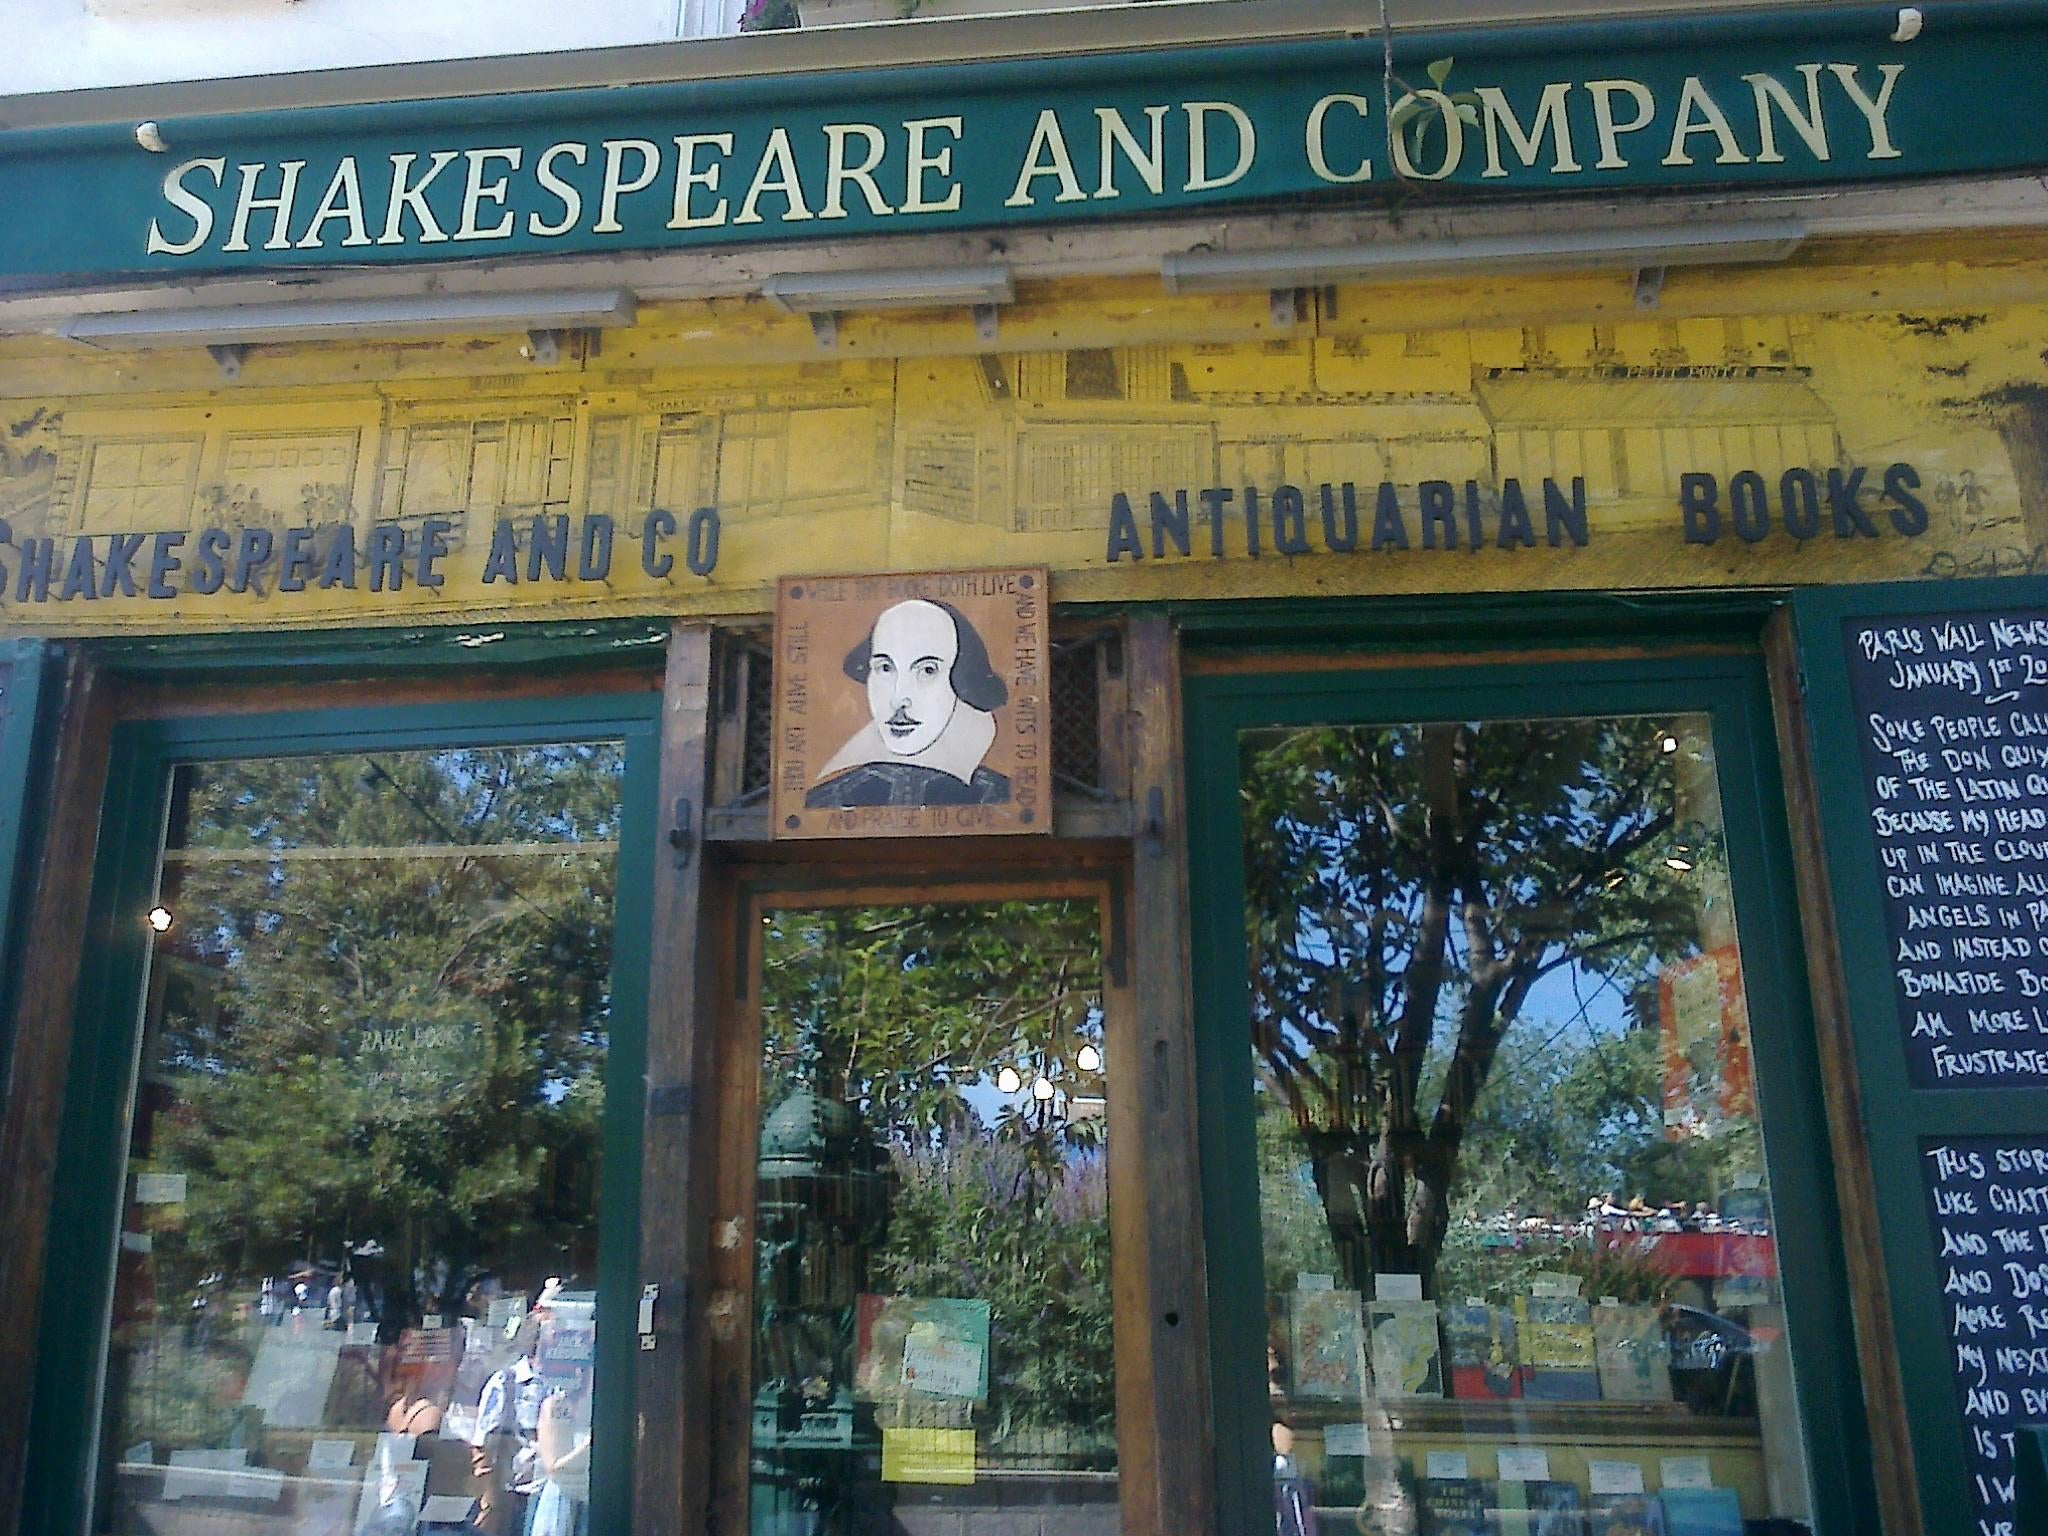 Negocio en Shakespeare & Co.